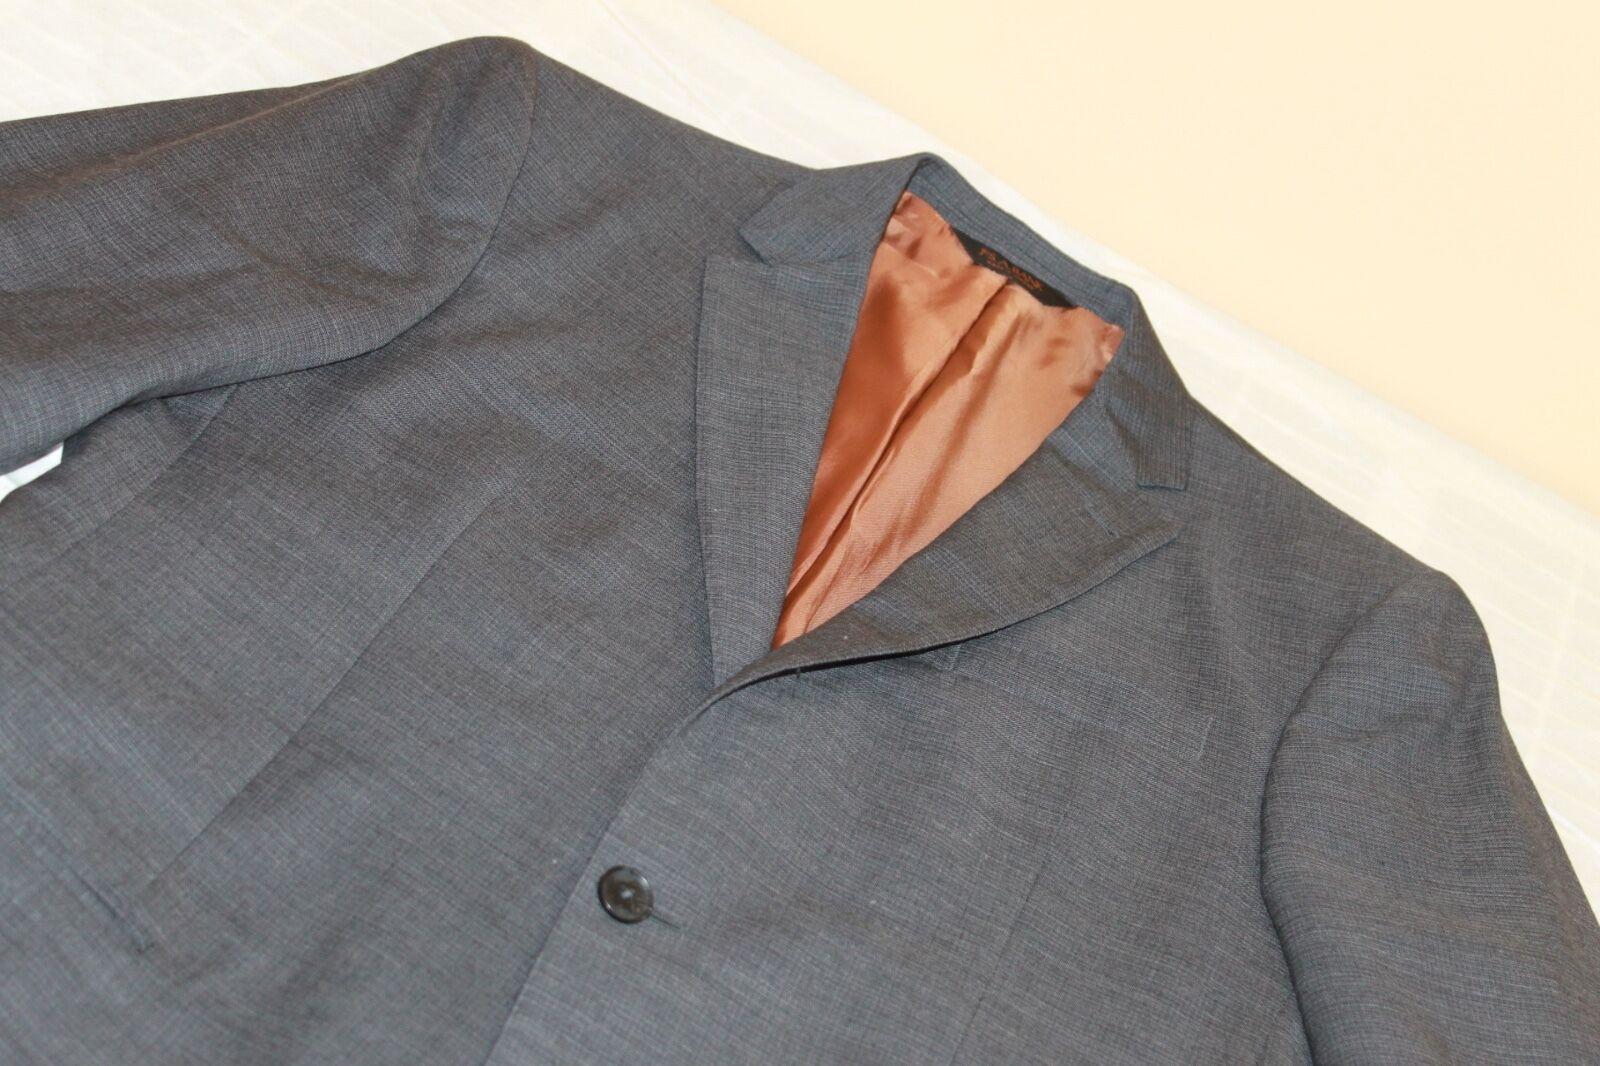 NEW WITHOUT TAGS JOS A BANK grau Suit 40 L 100% Wool